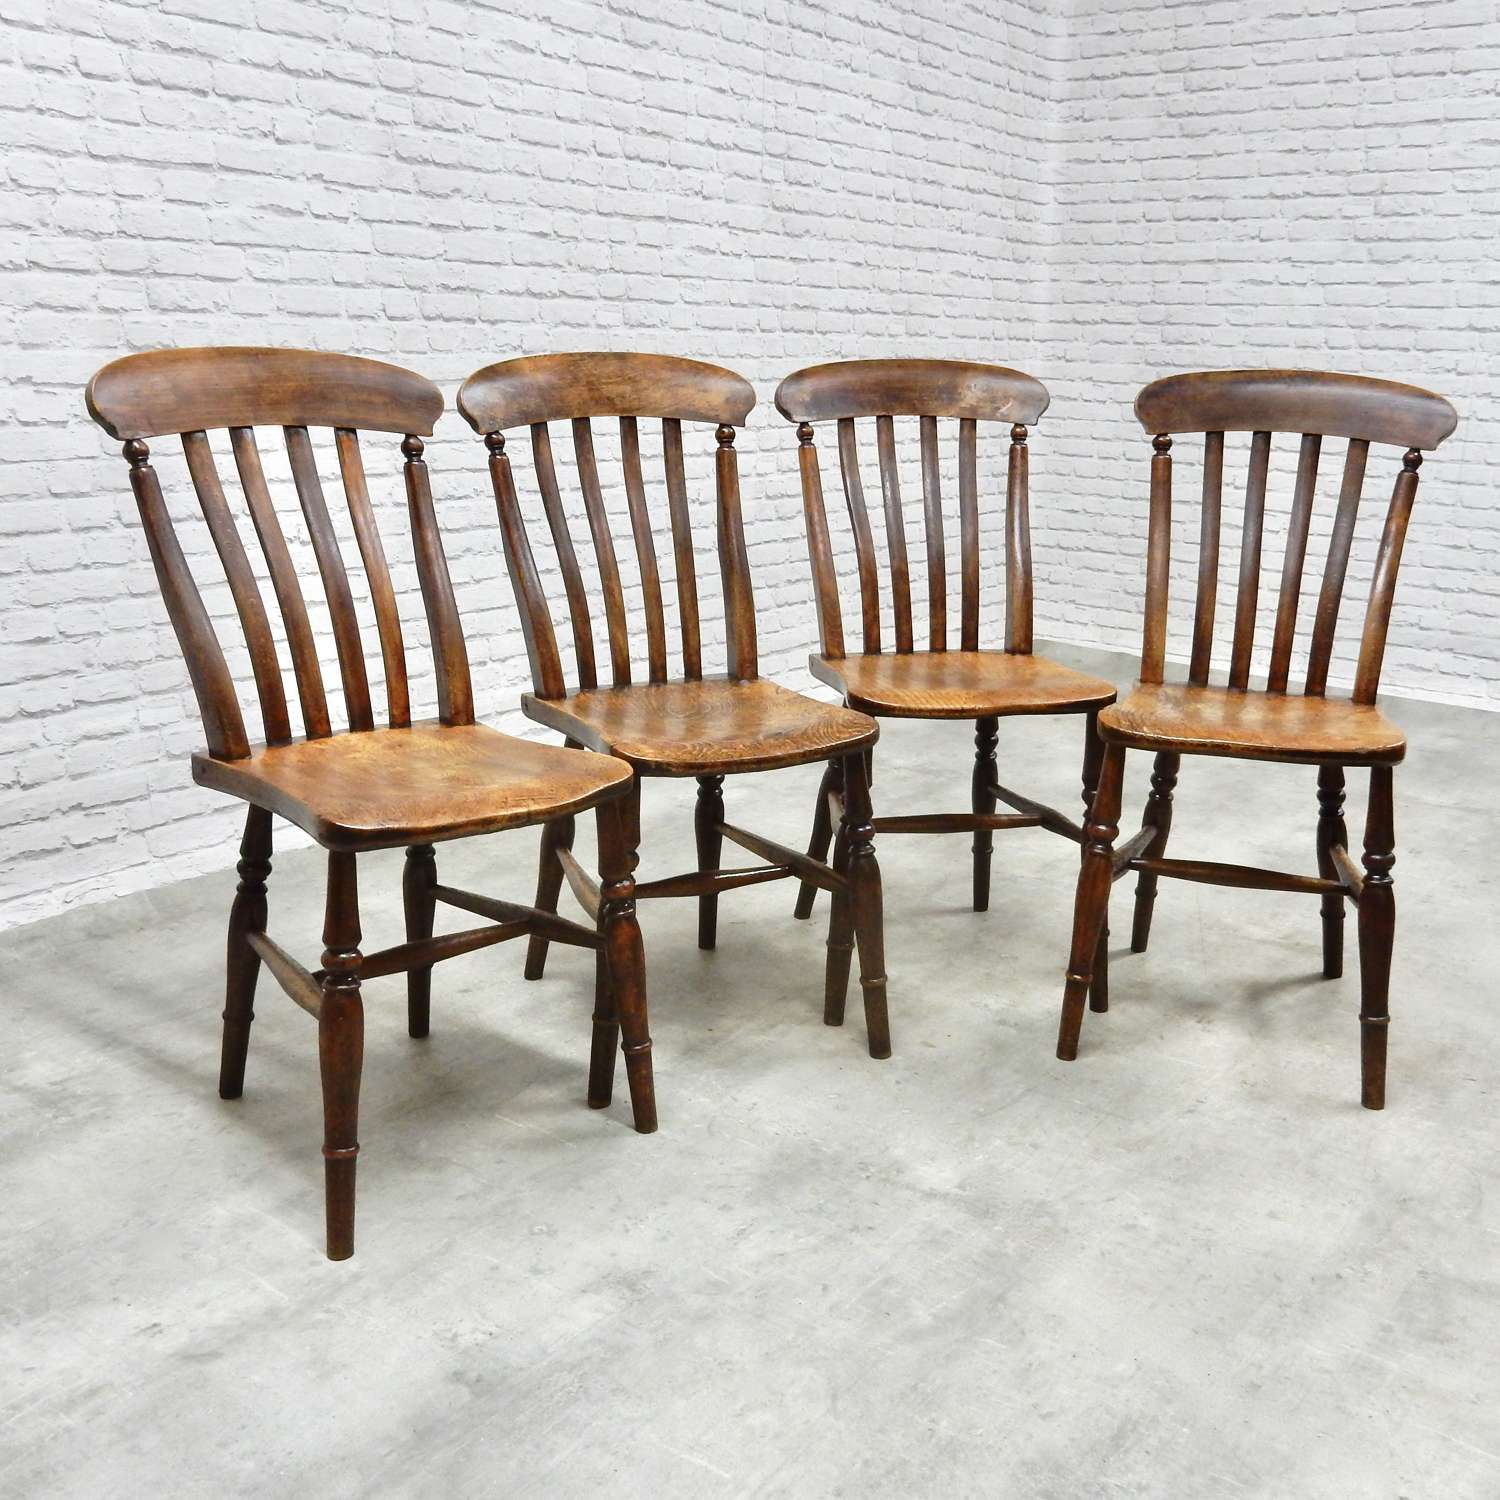 Set of 4 Windsor Kitchen Chairs